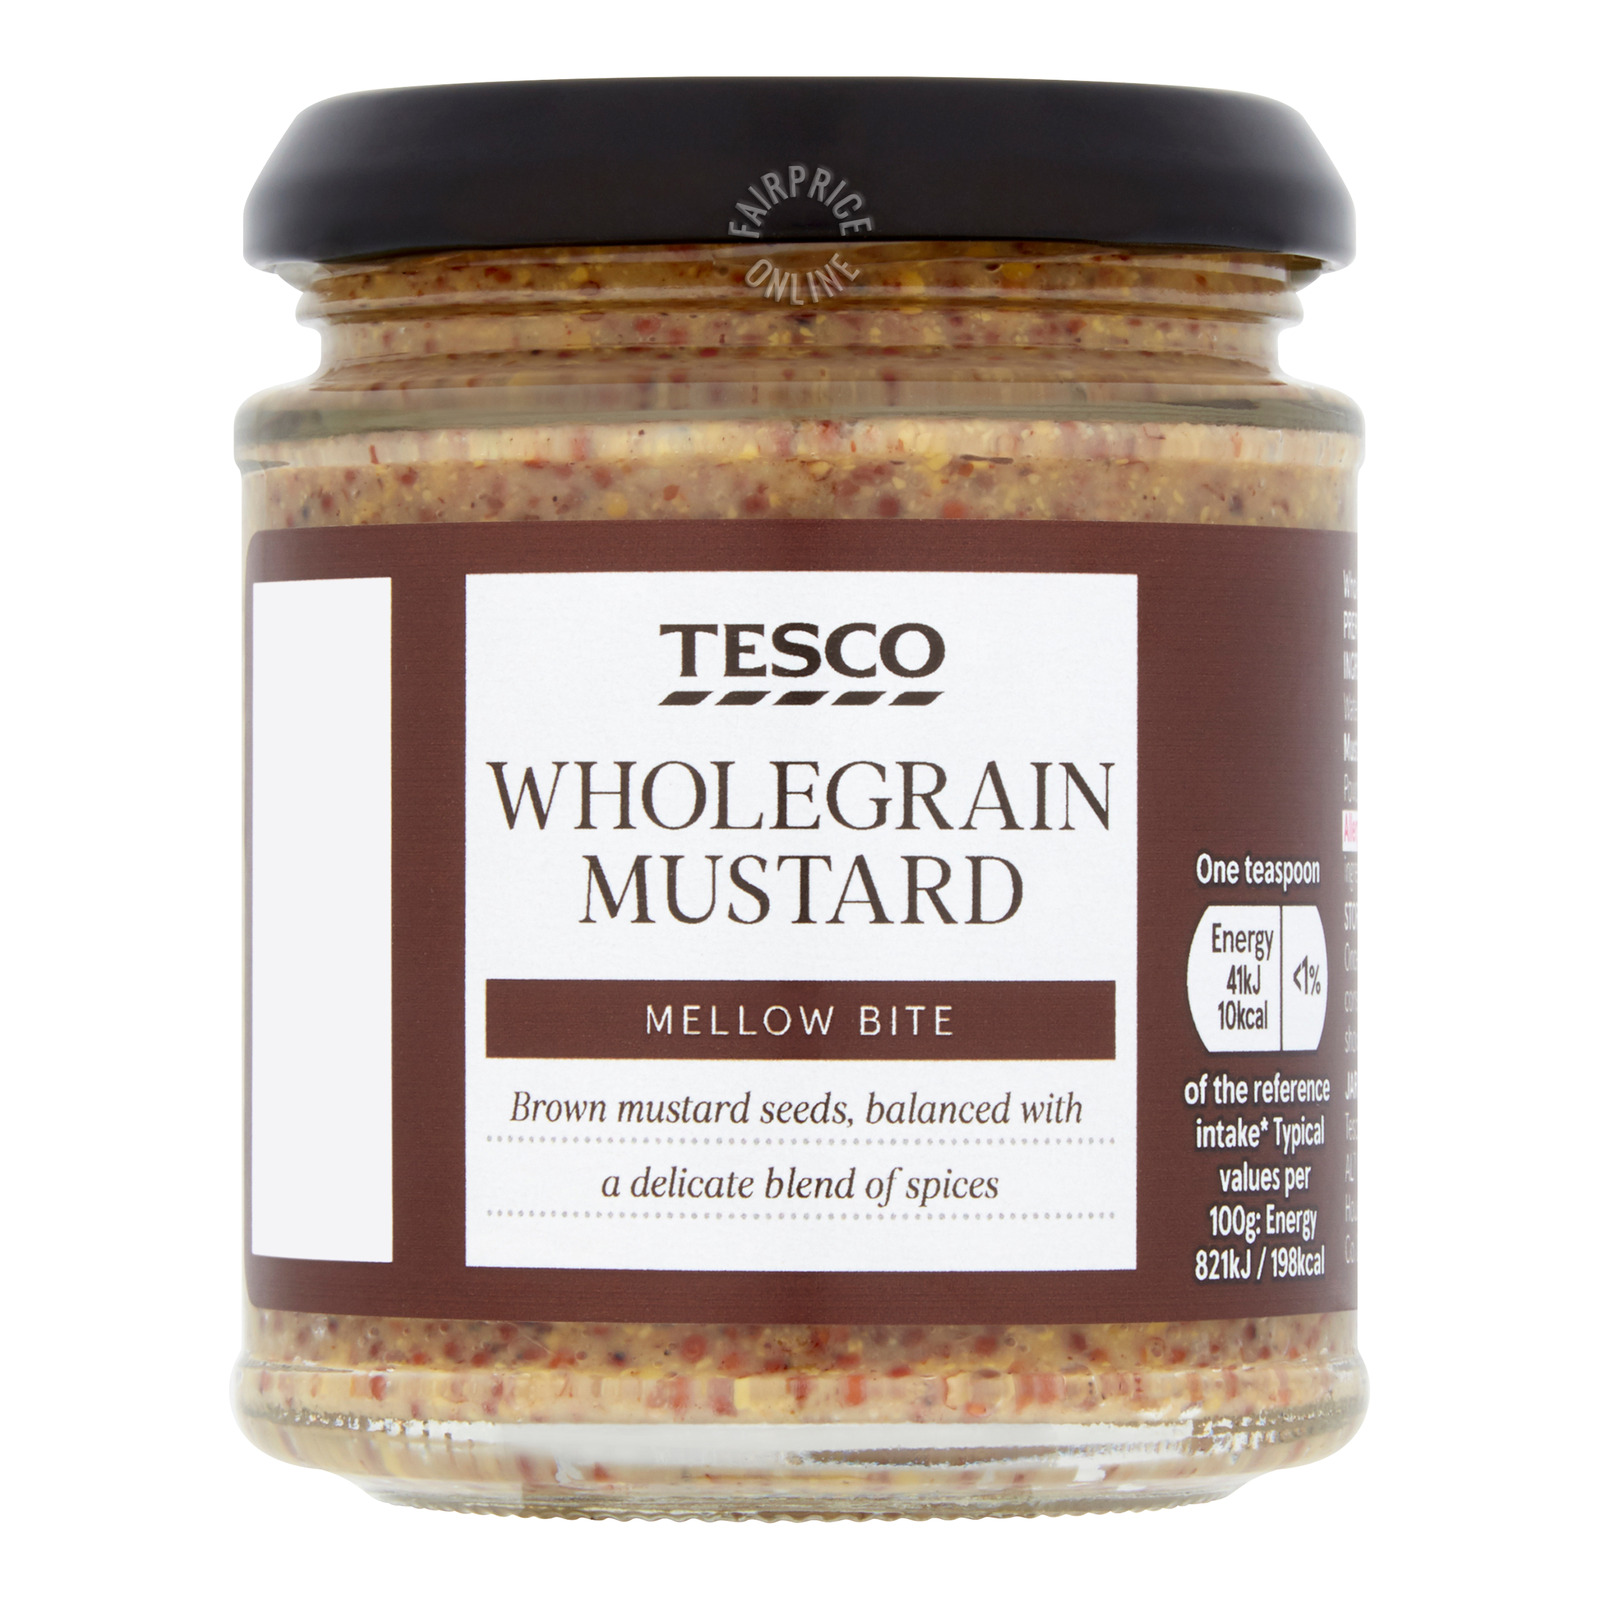 Tesco Wholegrain Mustard